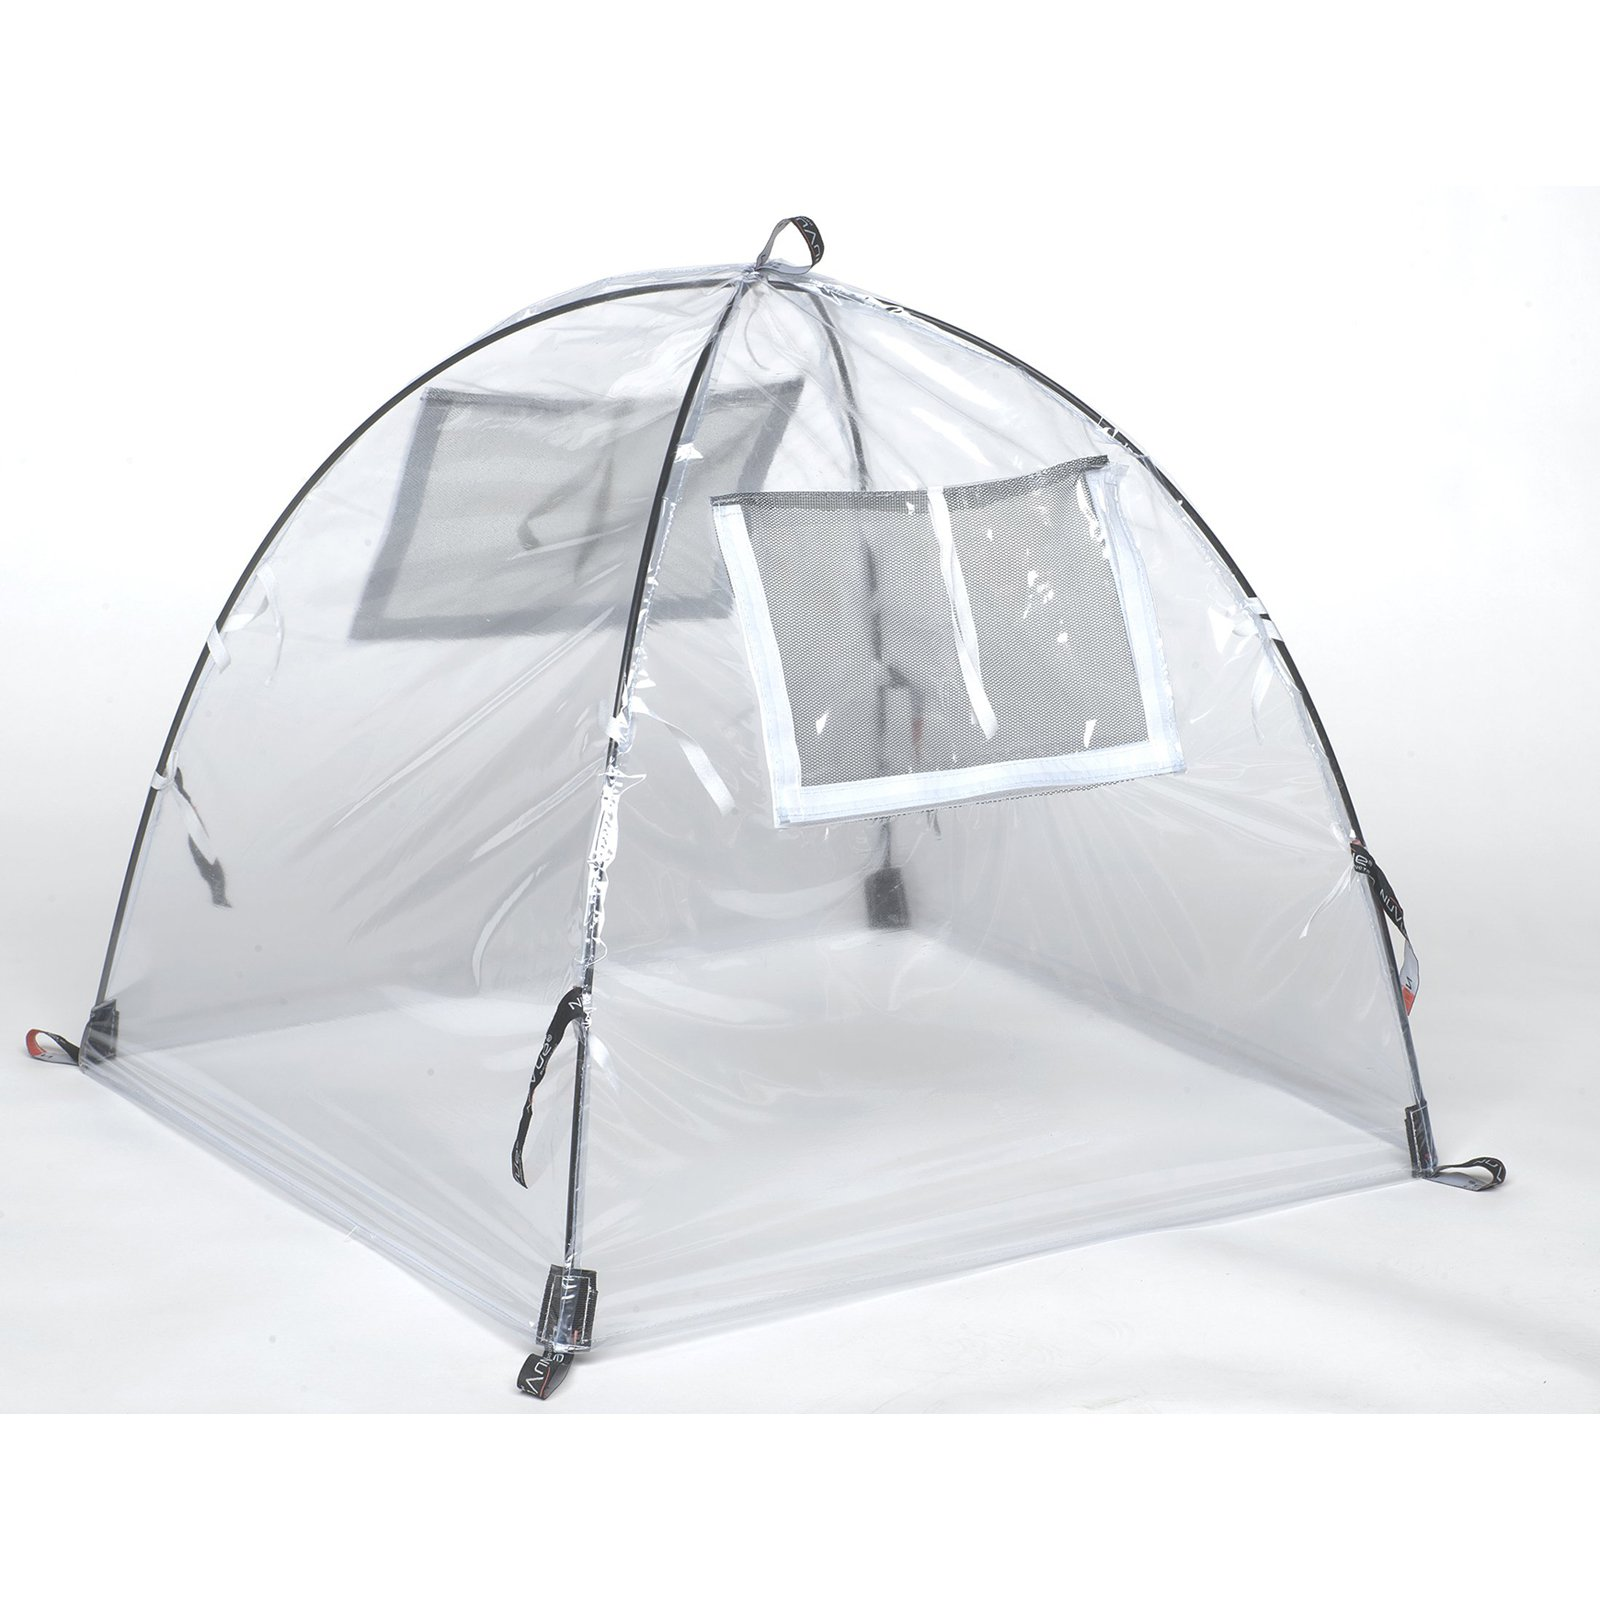 "Nuvue Products 22"" x 22"" Transparent Pop Up Greenhouse"